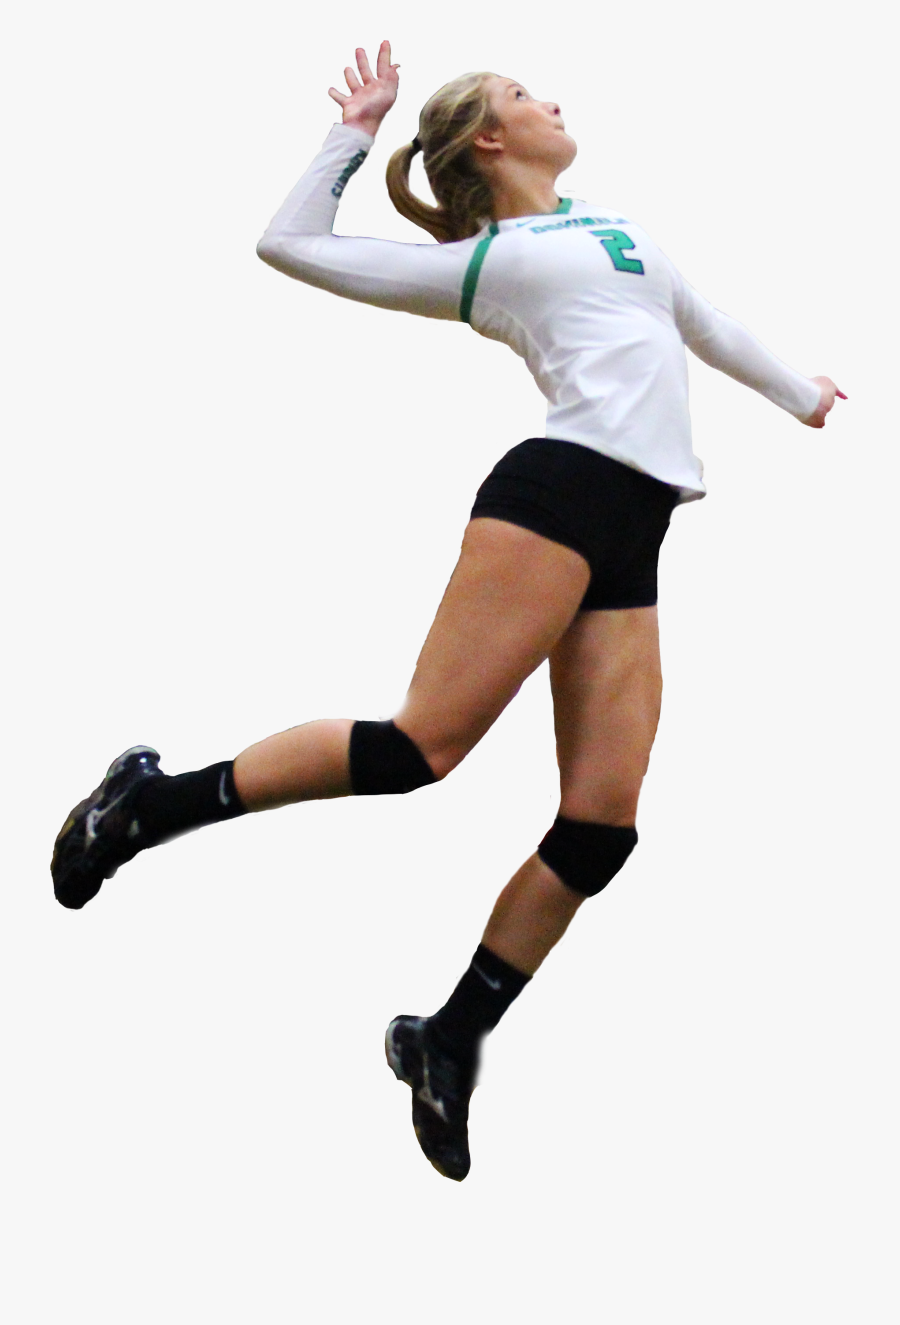 Volleyball Png Images Free Download - Women Volleyball Player Png, Transparent Clipart